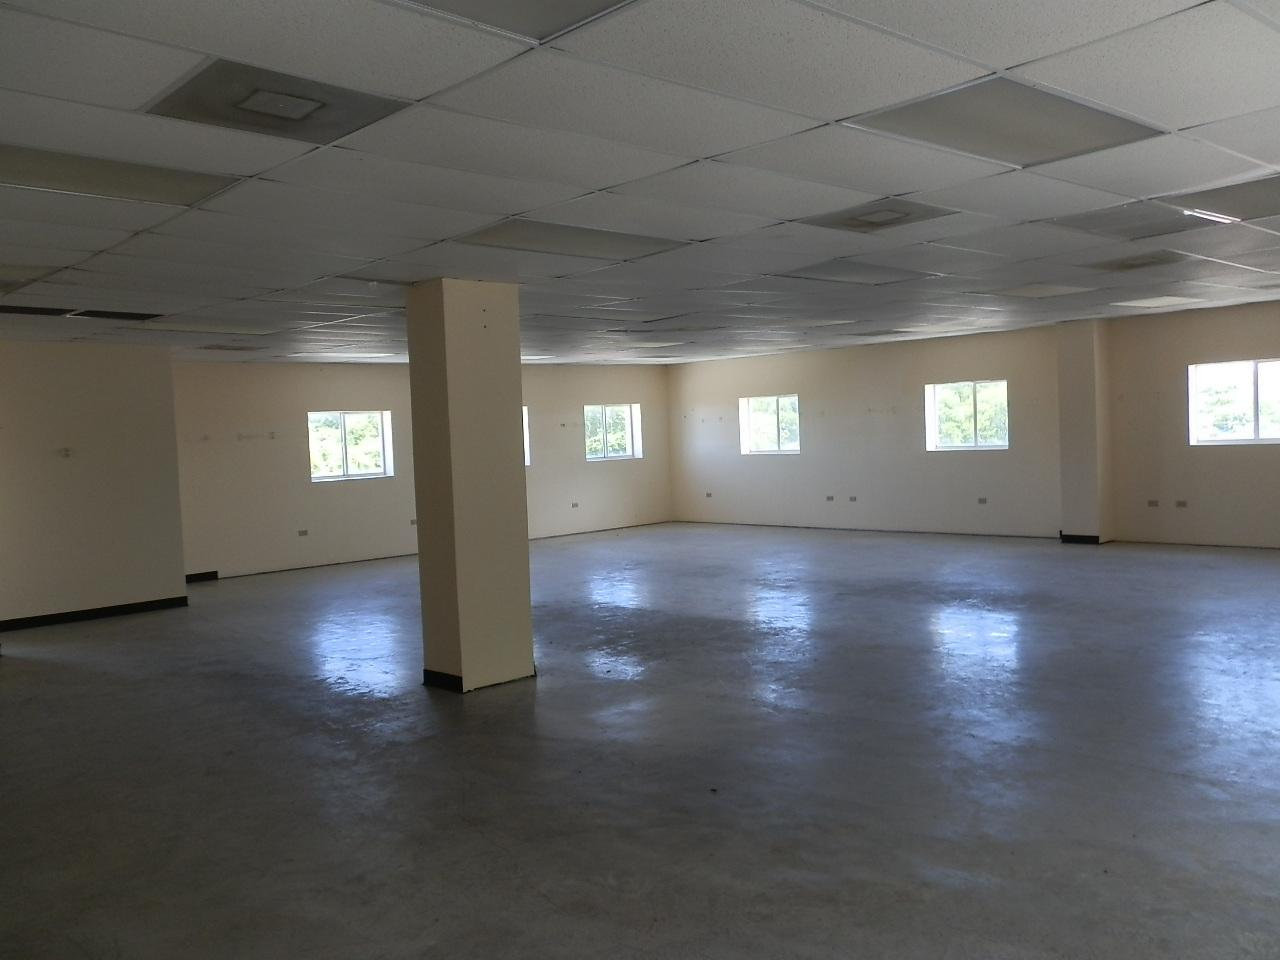 Commercial for Rent at 74 Contant SS 74 Contant SS St Thomas, Virgin Islands 00802 United States Virgin Islands